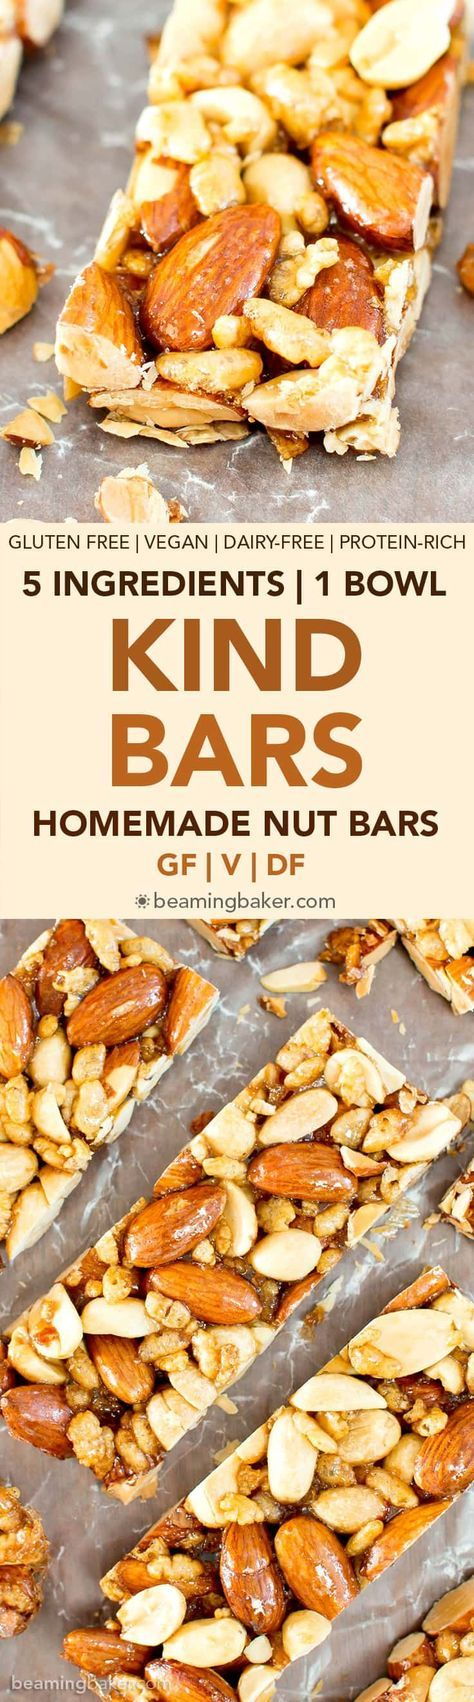 5 Ingredient Homemade KIND Nut Bars ~ An easy, one bowl recipe for irresistibly salty and sweet homemade KIND bars! They're protein packed, vegan, gluten free, dairy free, and refined sugar free! | BeamingBaker.com